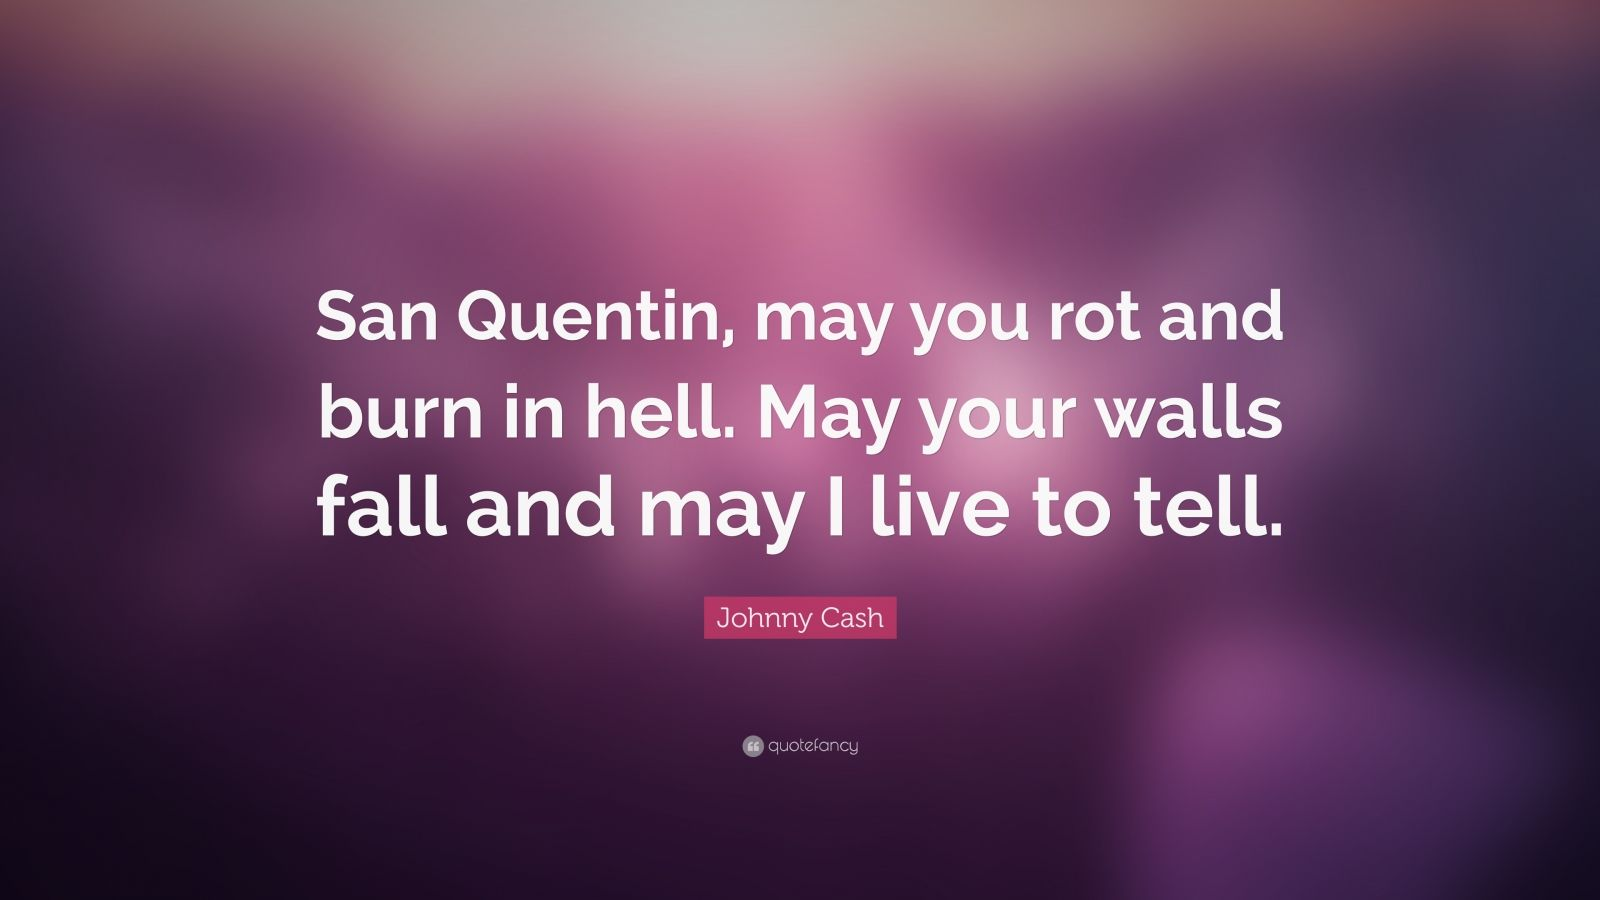 """Johnny Cash Quote: """"San Quentin, may you rot and burn in hell. May your walls fall and may I live to tell."""""""